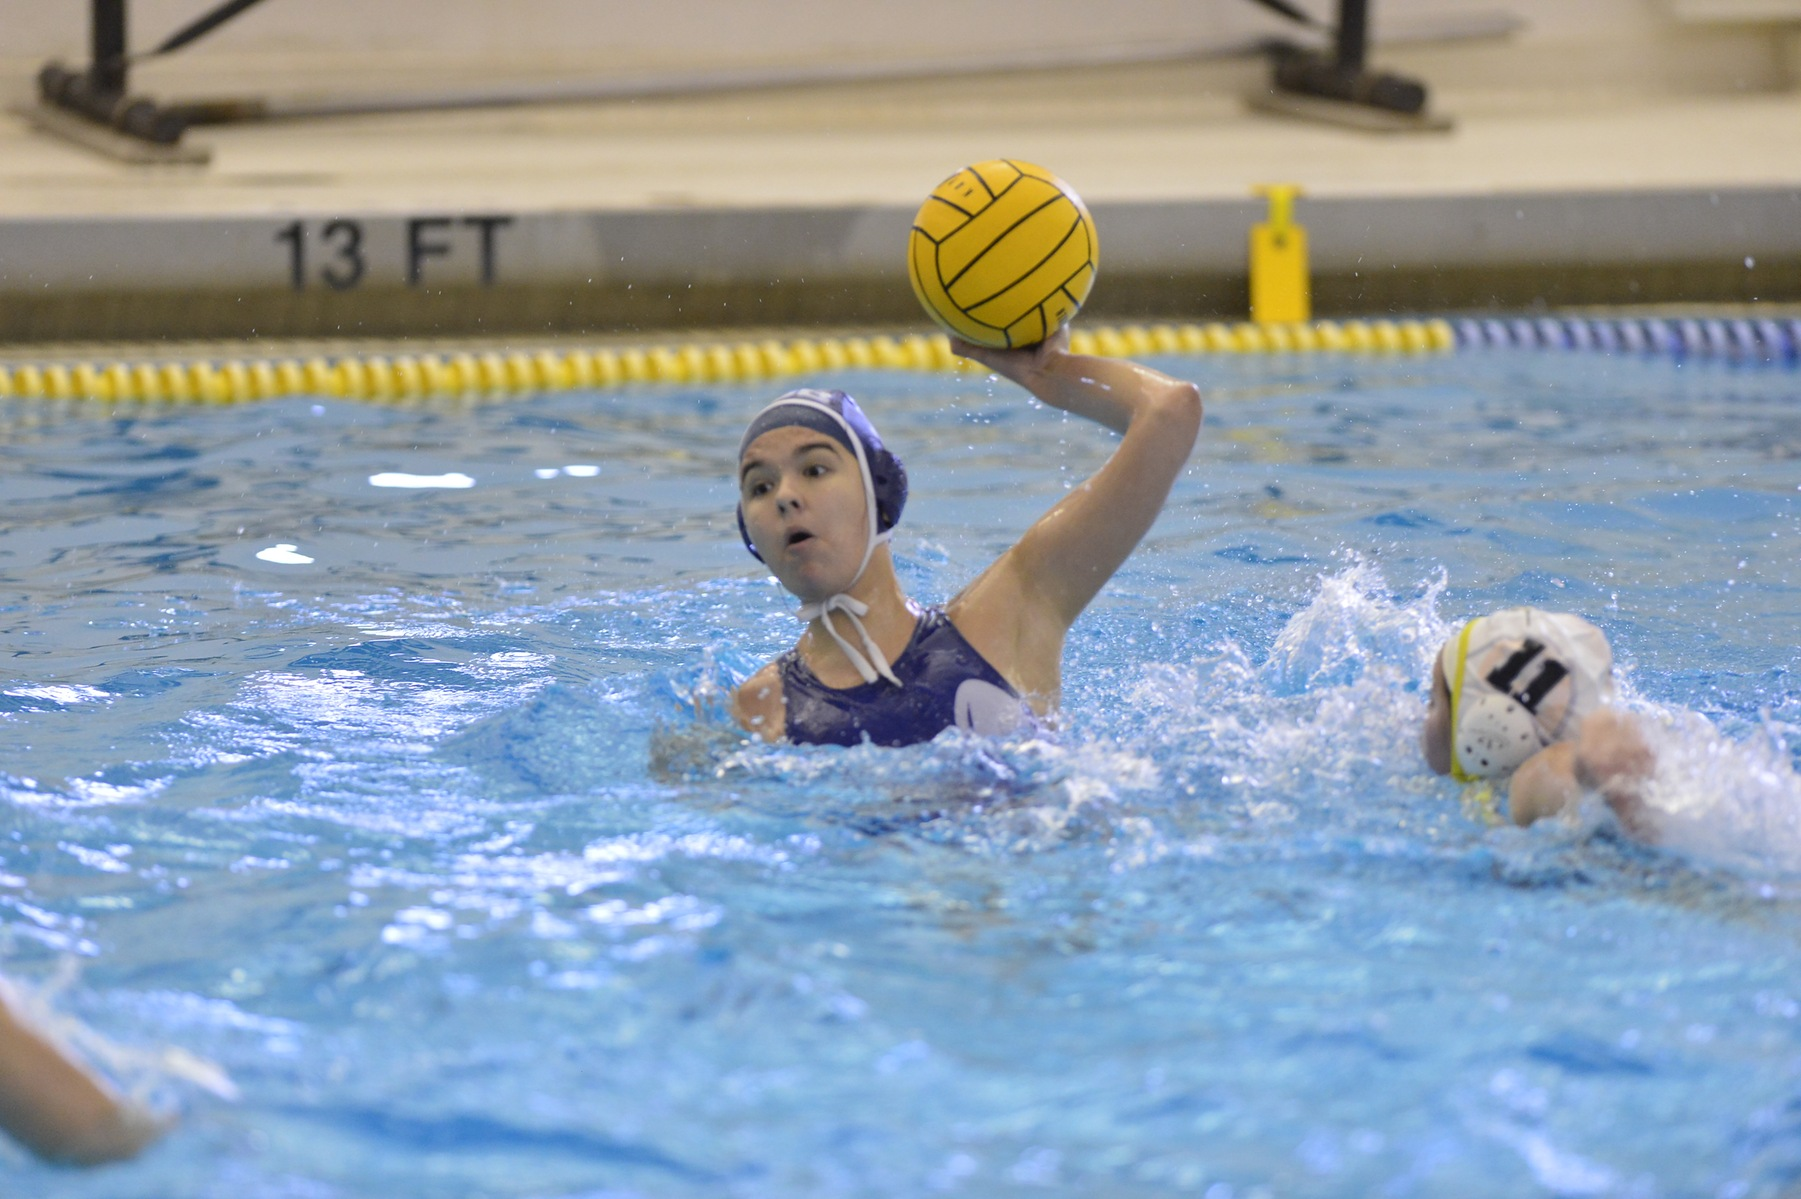 Lions Fall to Caltech in Women's Water Polo